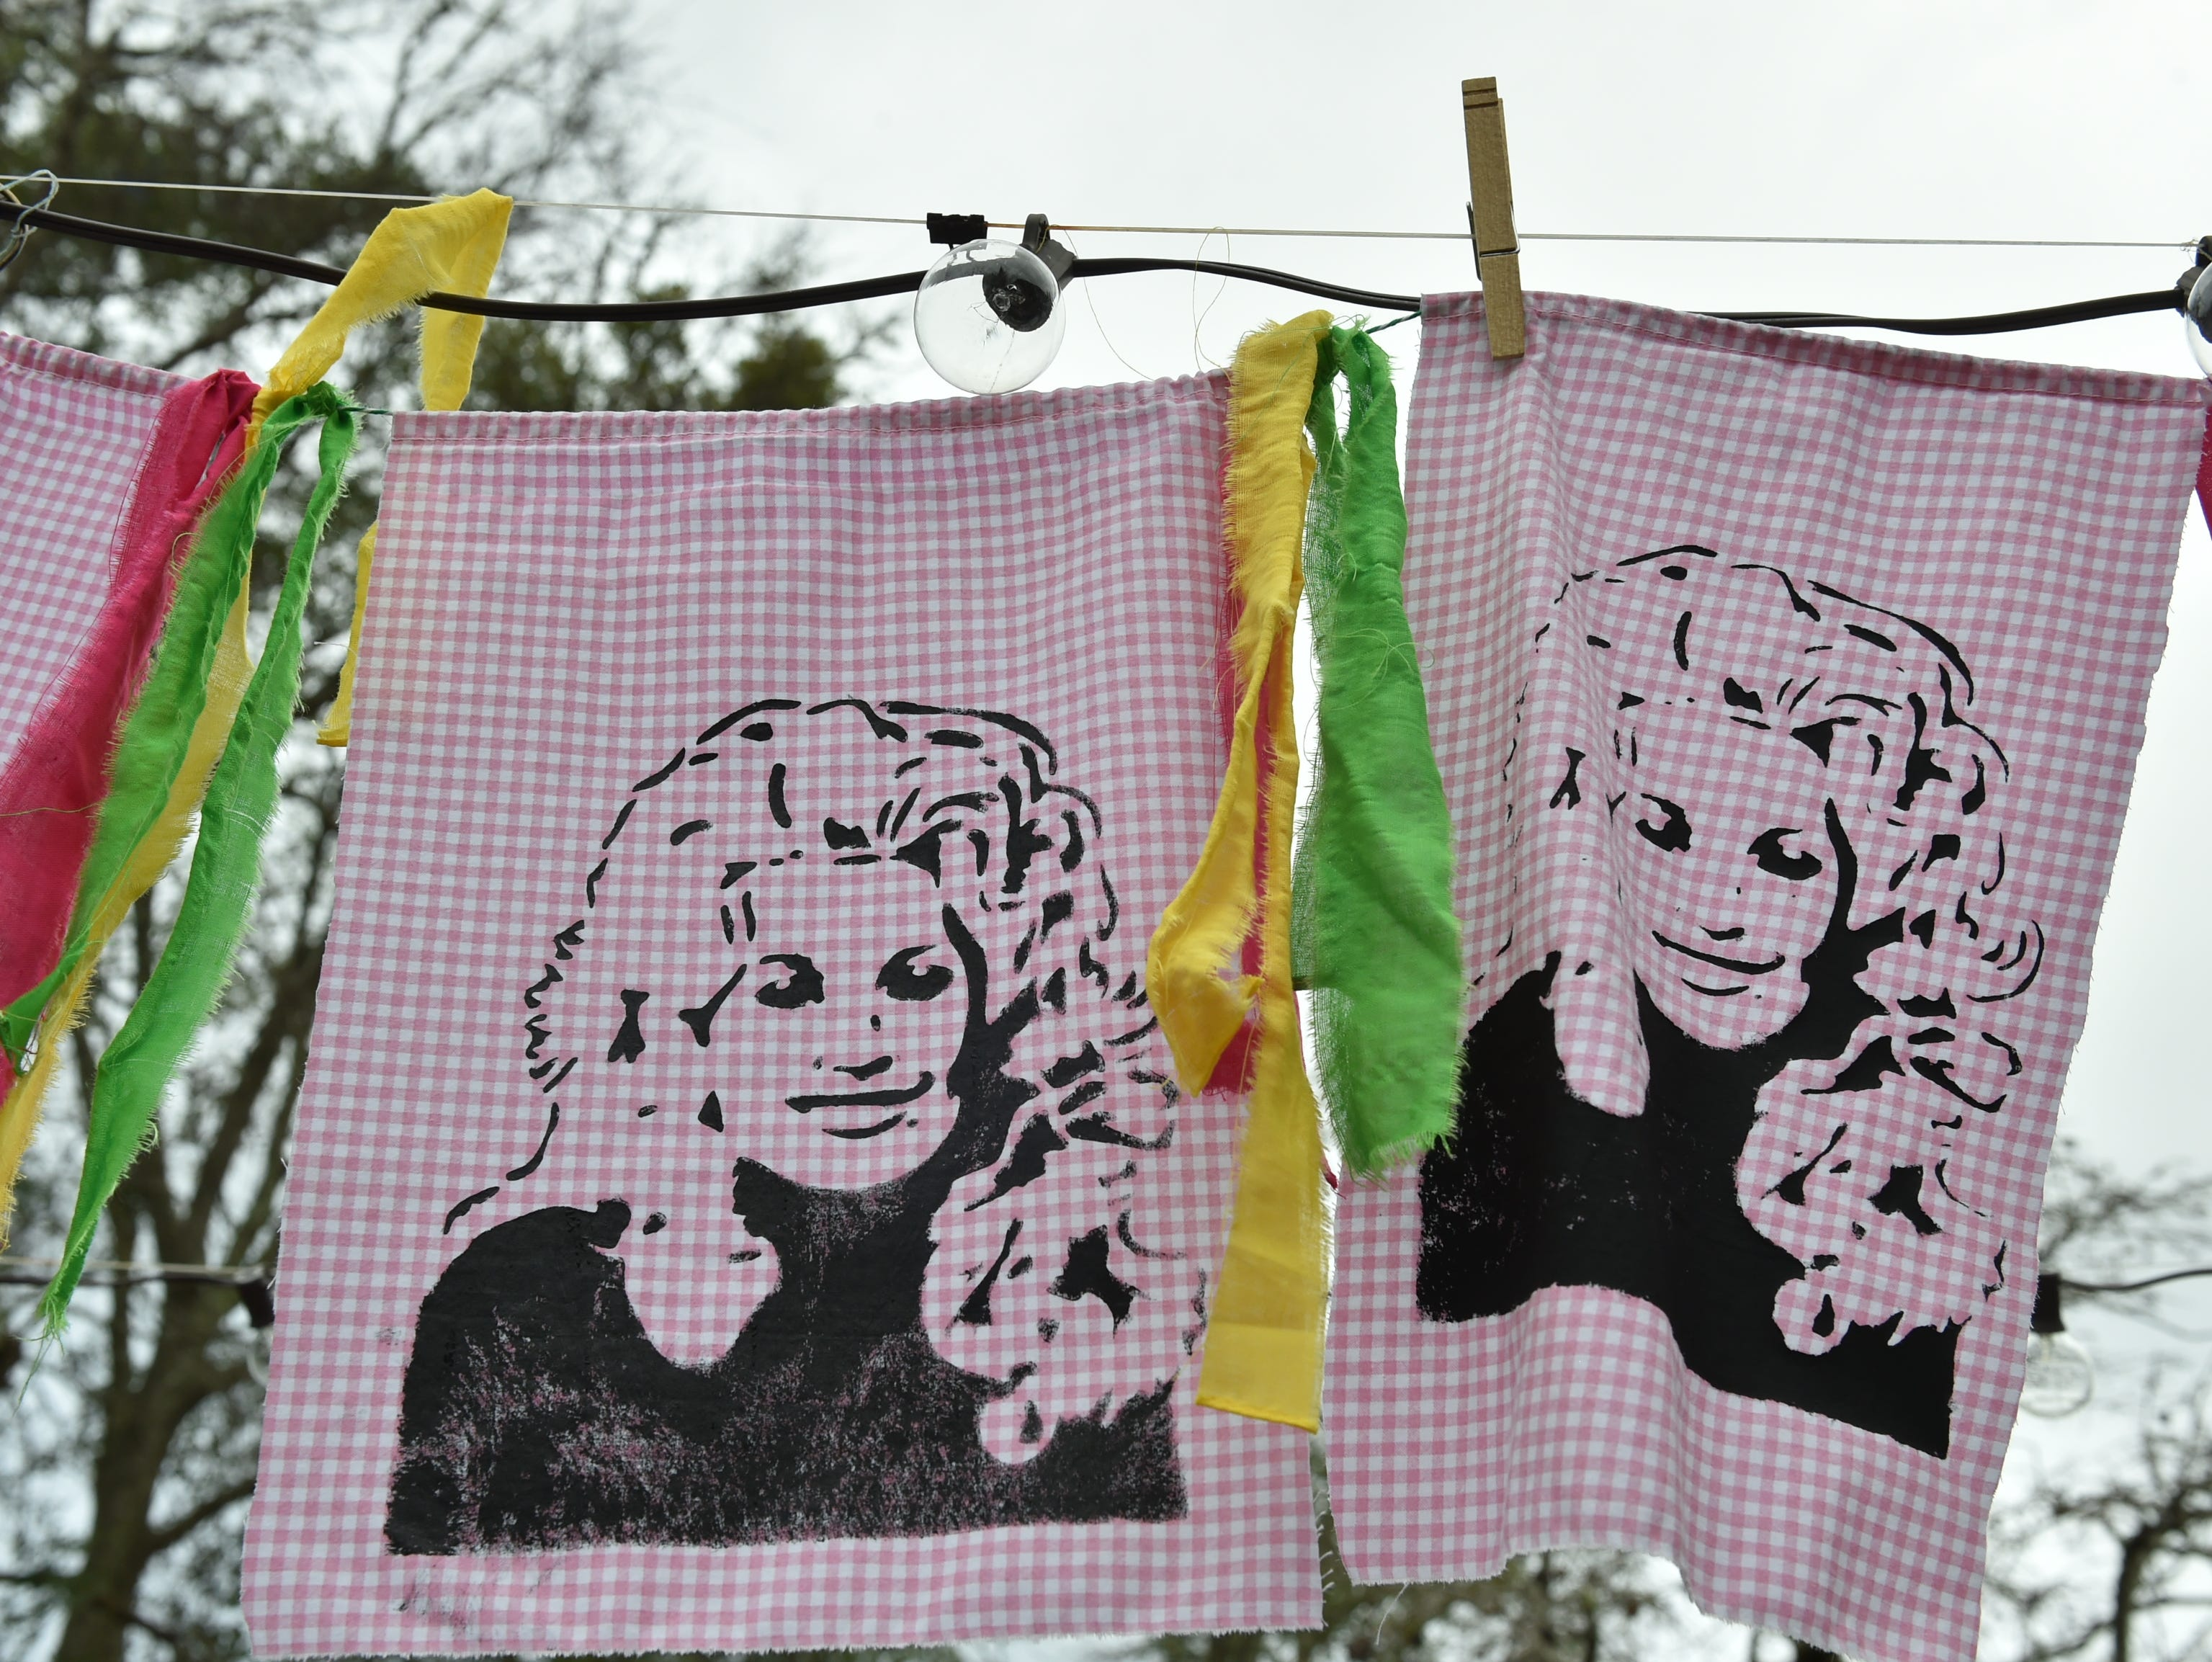 Banners embellished with images of the Dolly Should festival muse Dolly Parton hang in the courtyard between the Mockingbird Care and Smith & Lens in Bay St. Louis. Saturday, Jan. 12, 2019.